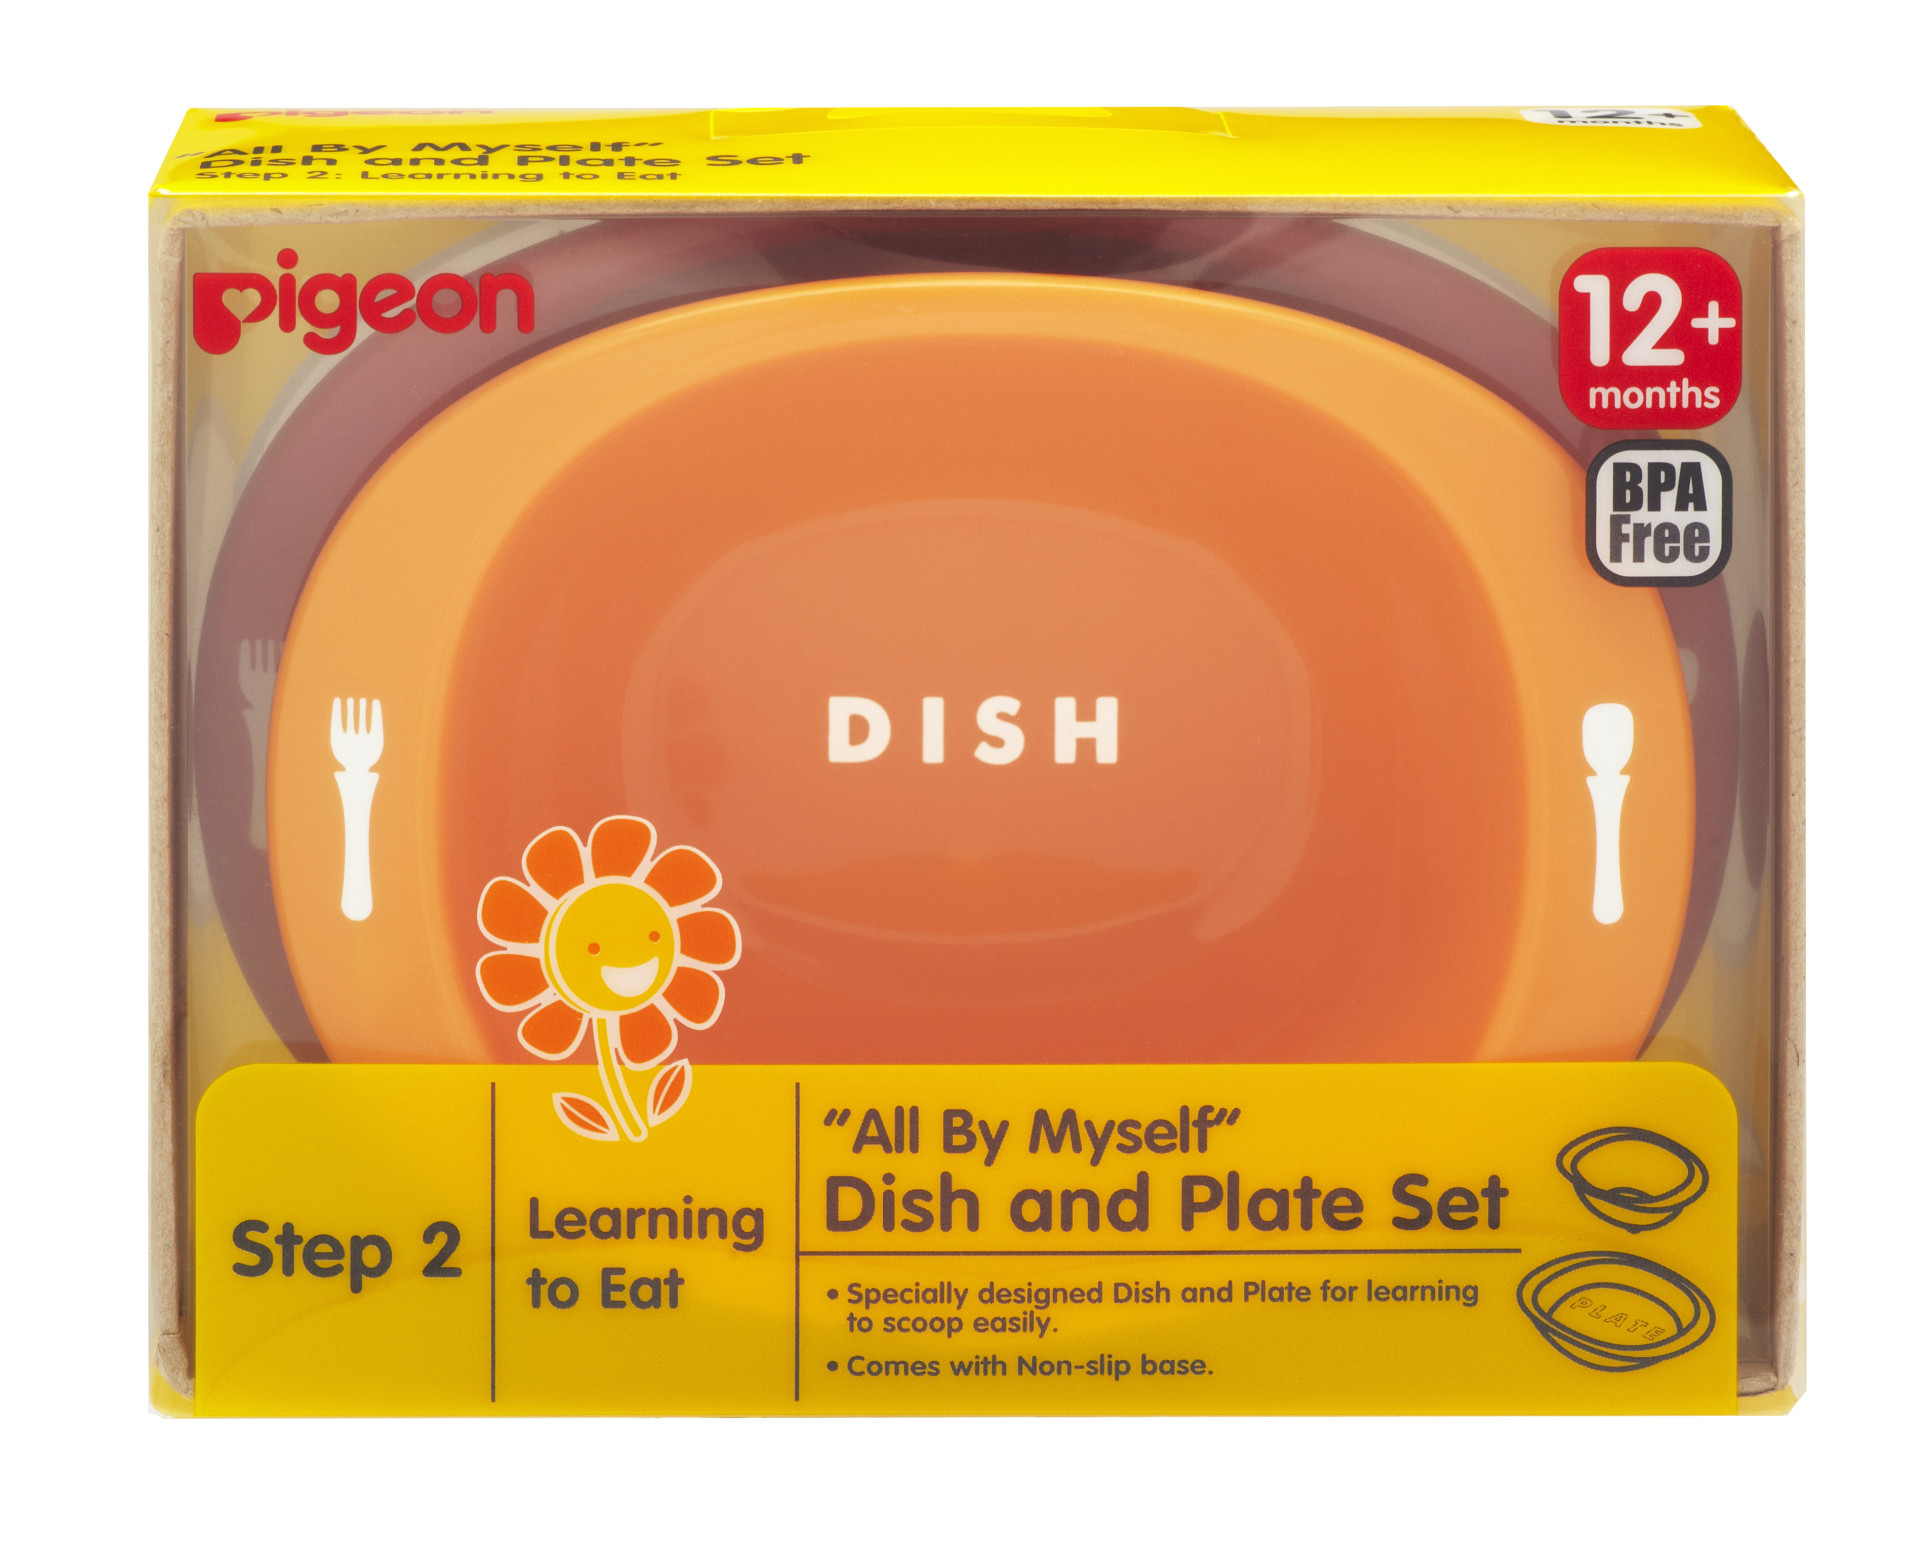 Dish and Plate Set